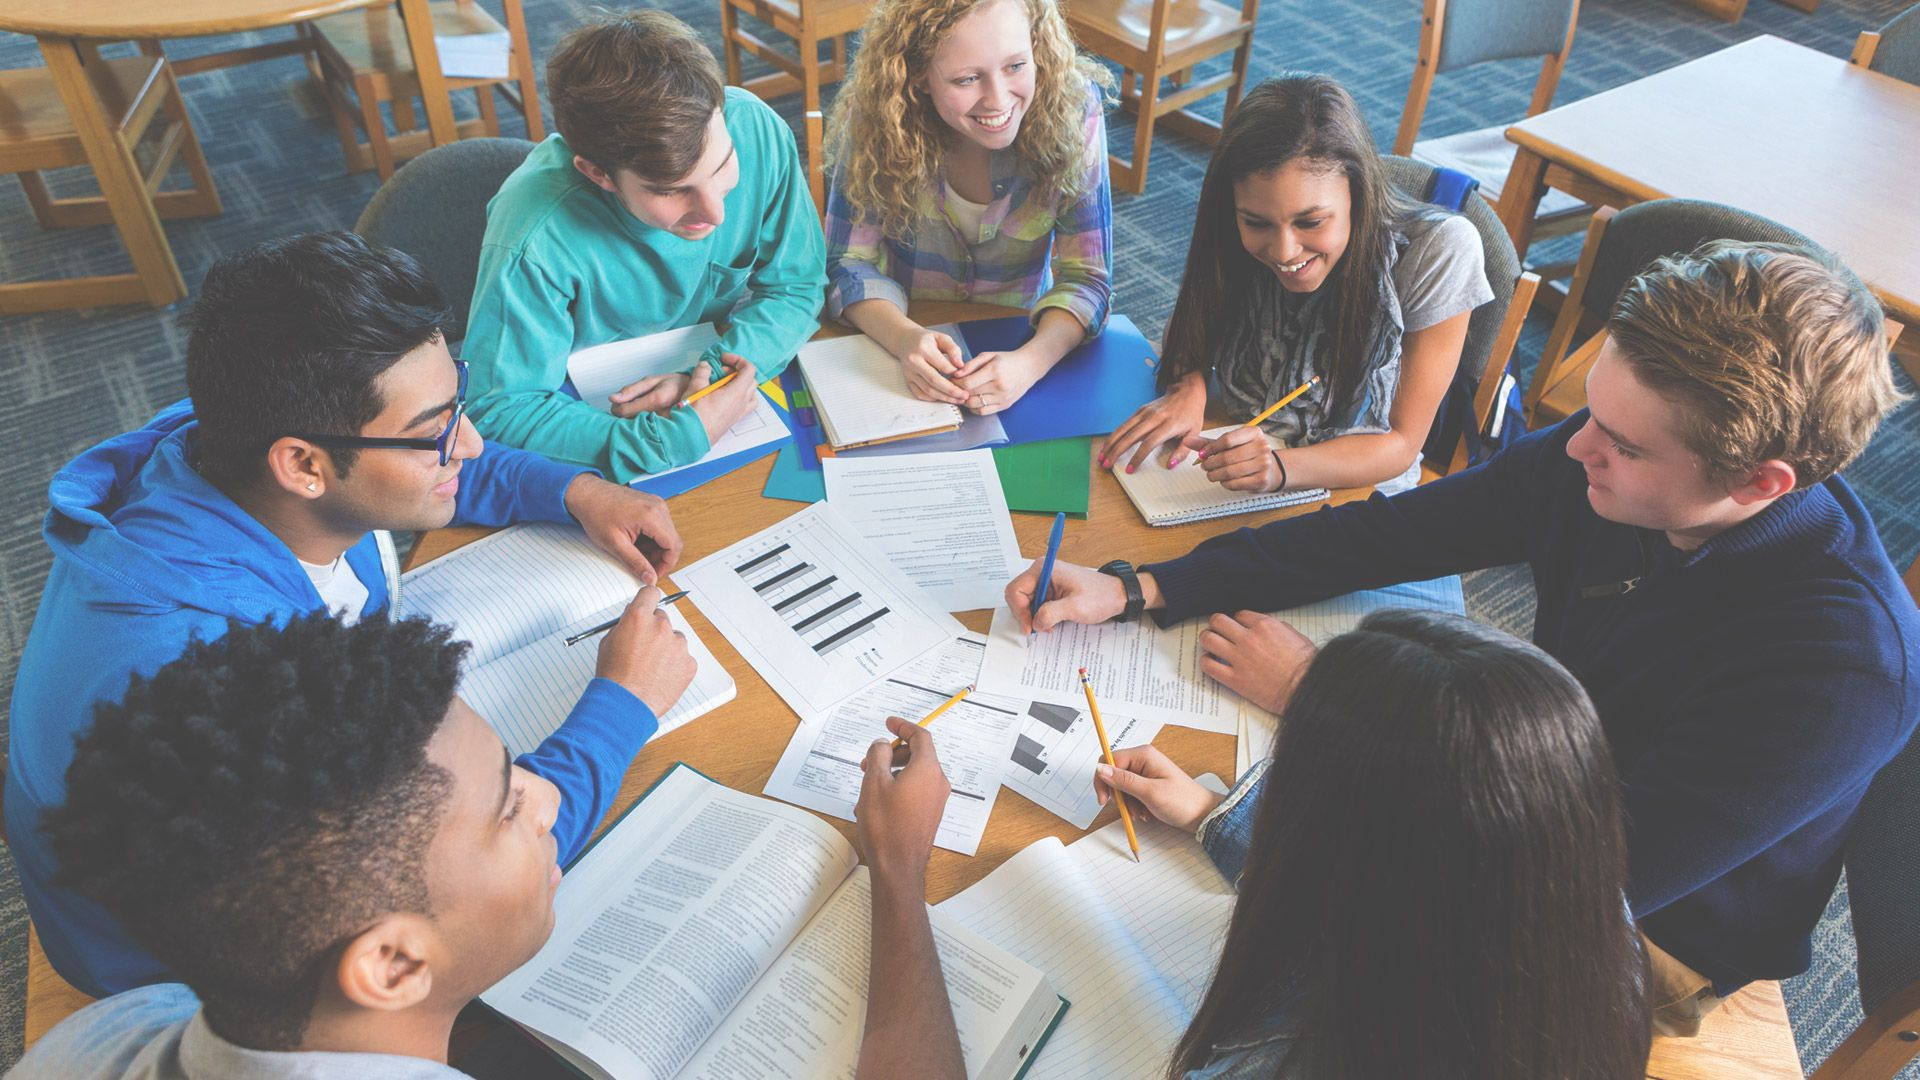 Group work that works education education quotes for